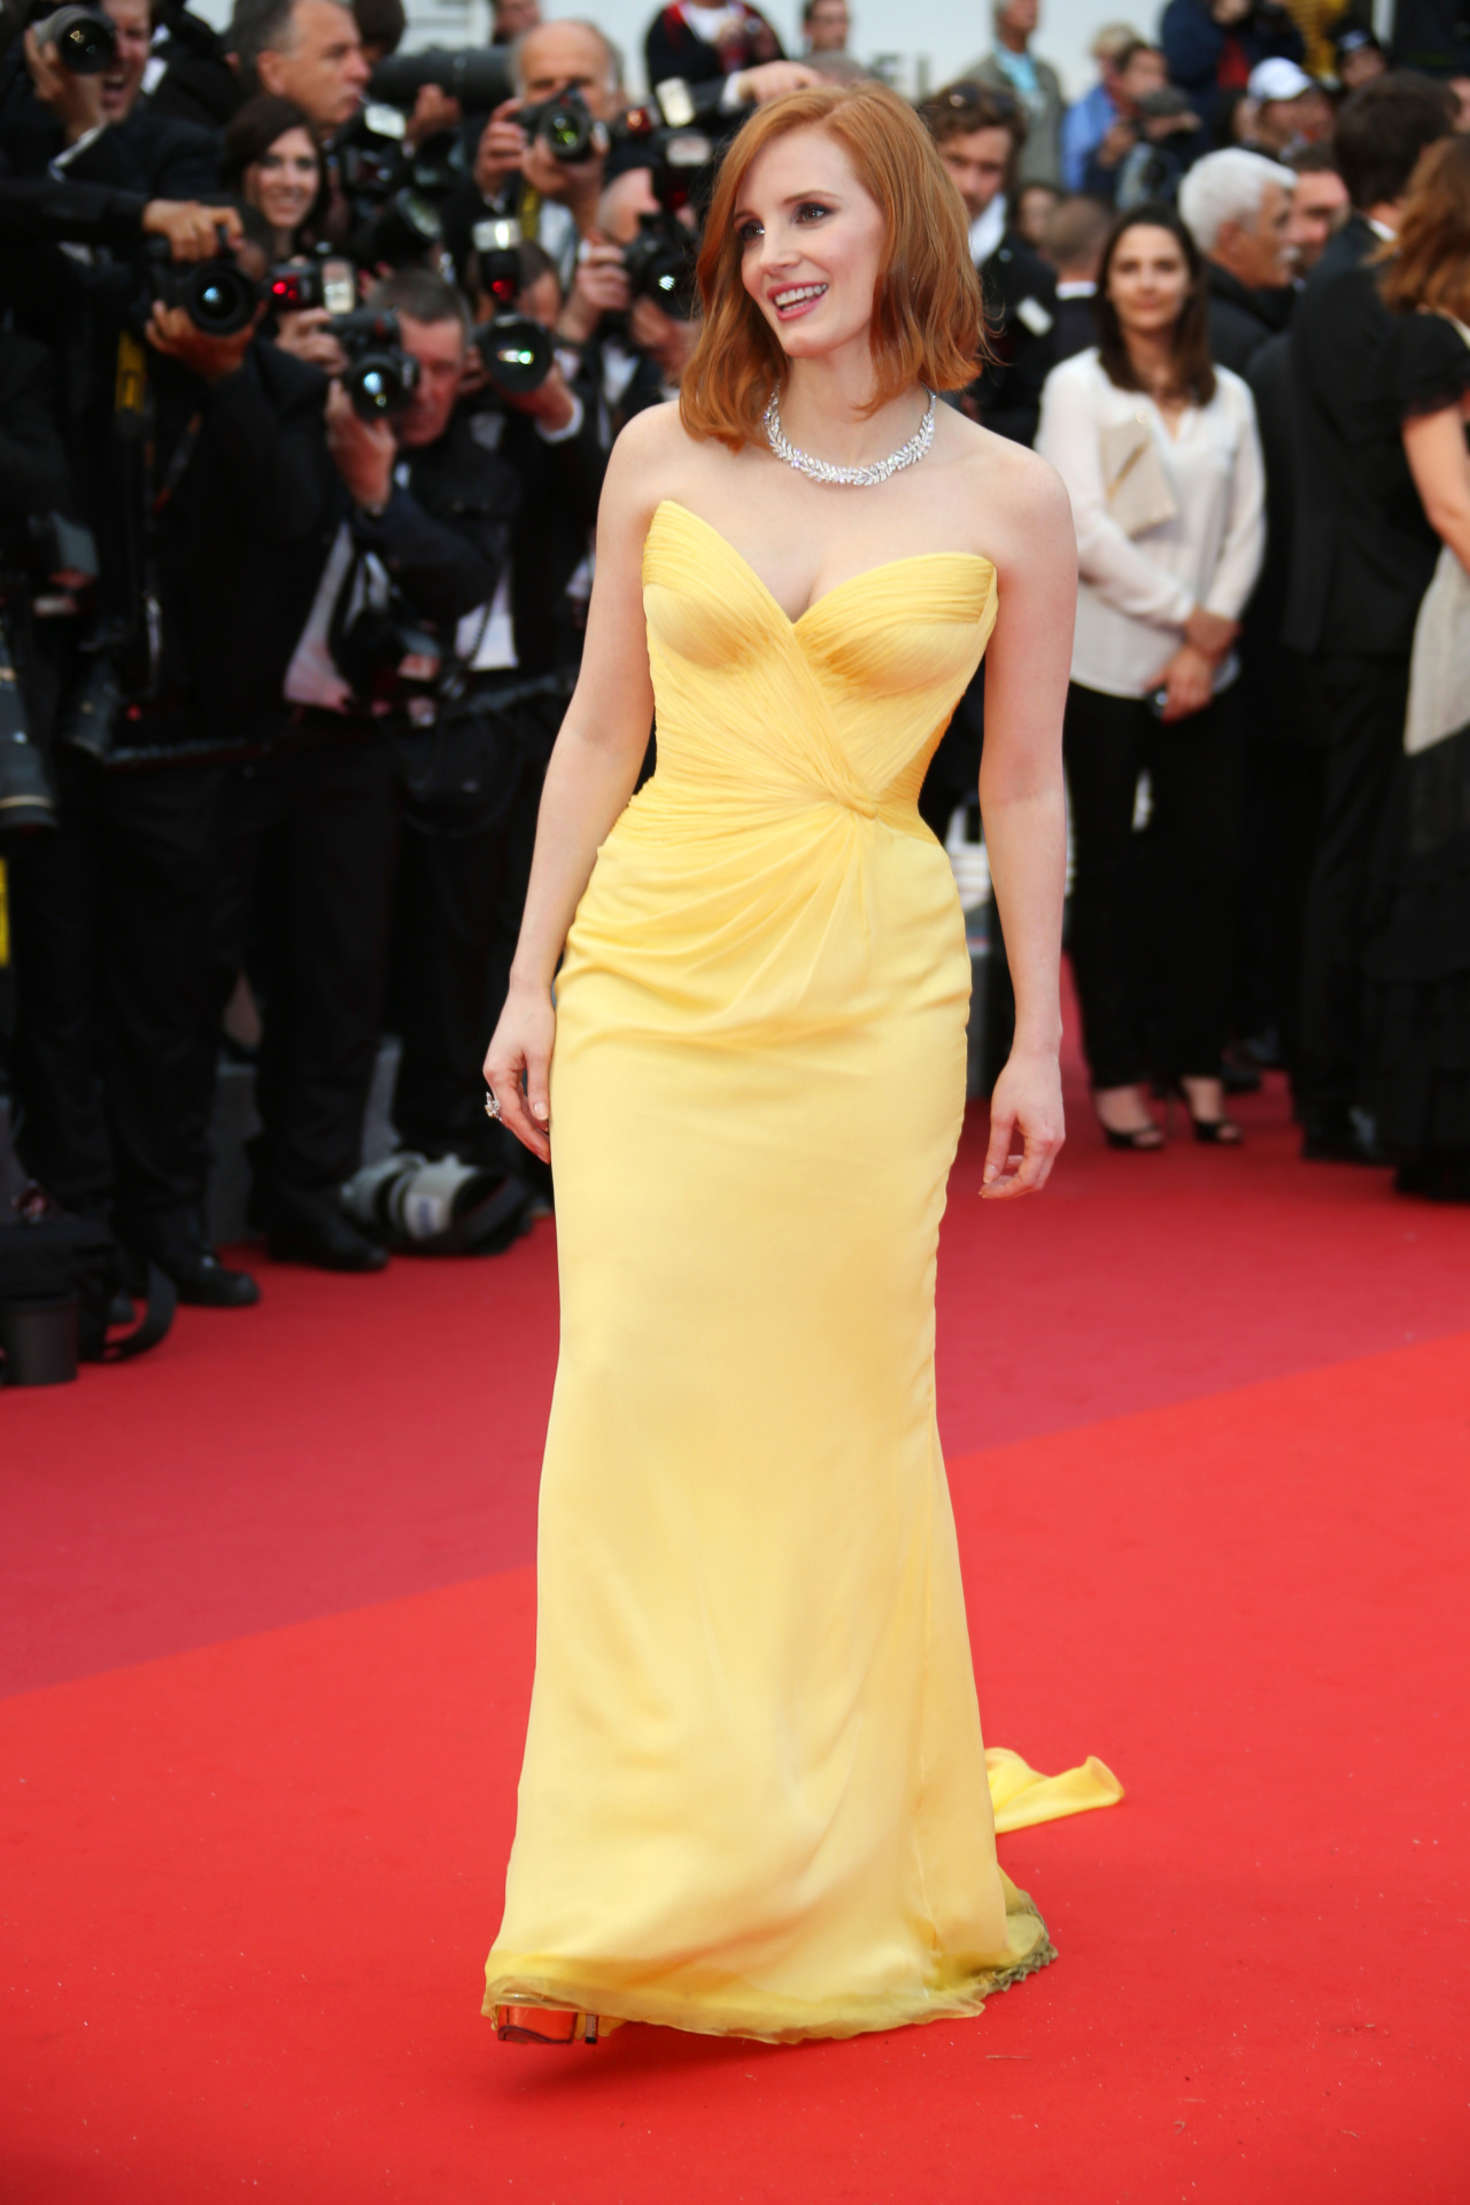 http://www.theplace.ru/archive/jessica_chastain/img/jessica_chastain_cafe_society_opening_gala_at_2016_cannes_film_festival_14.jpg